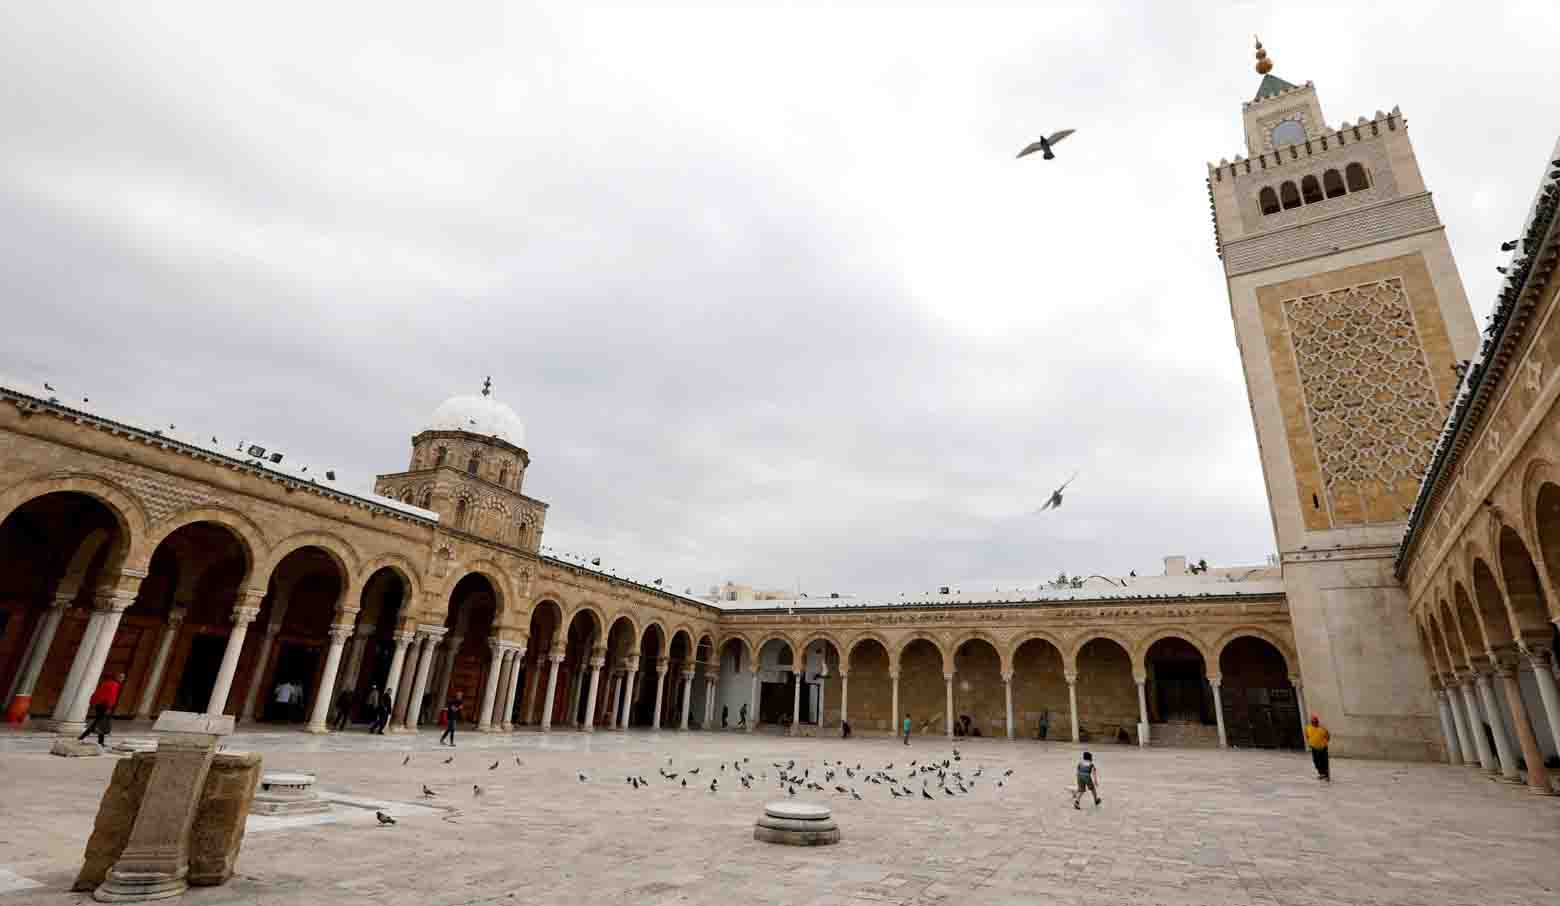 The courtyard of Al-Zaytouna mosque in Tunis. (Reuters)